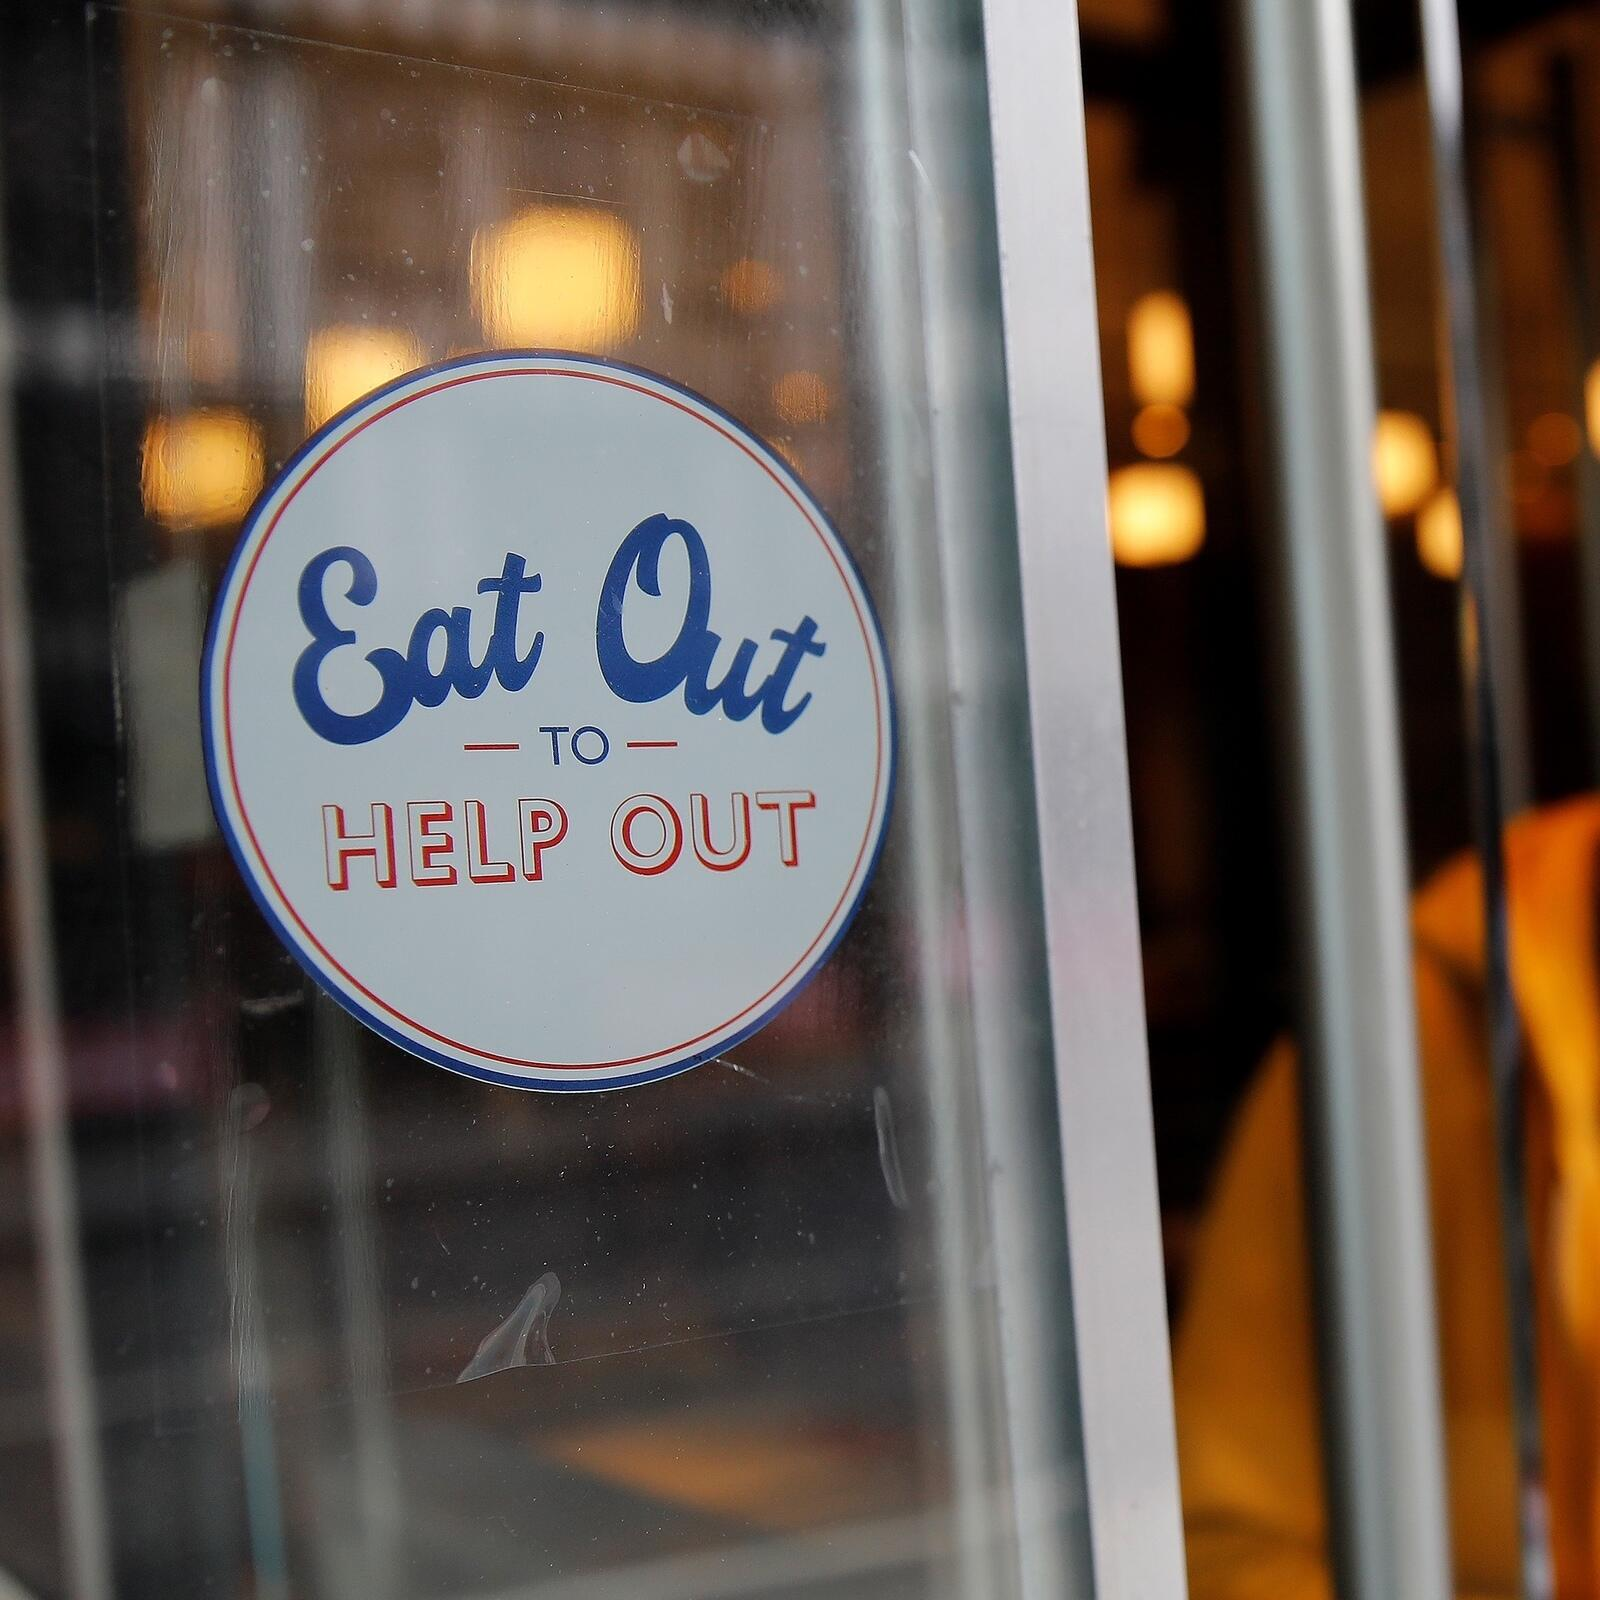 Can 'Eat Out to Help Out' save the restaurant industry?